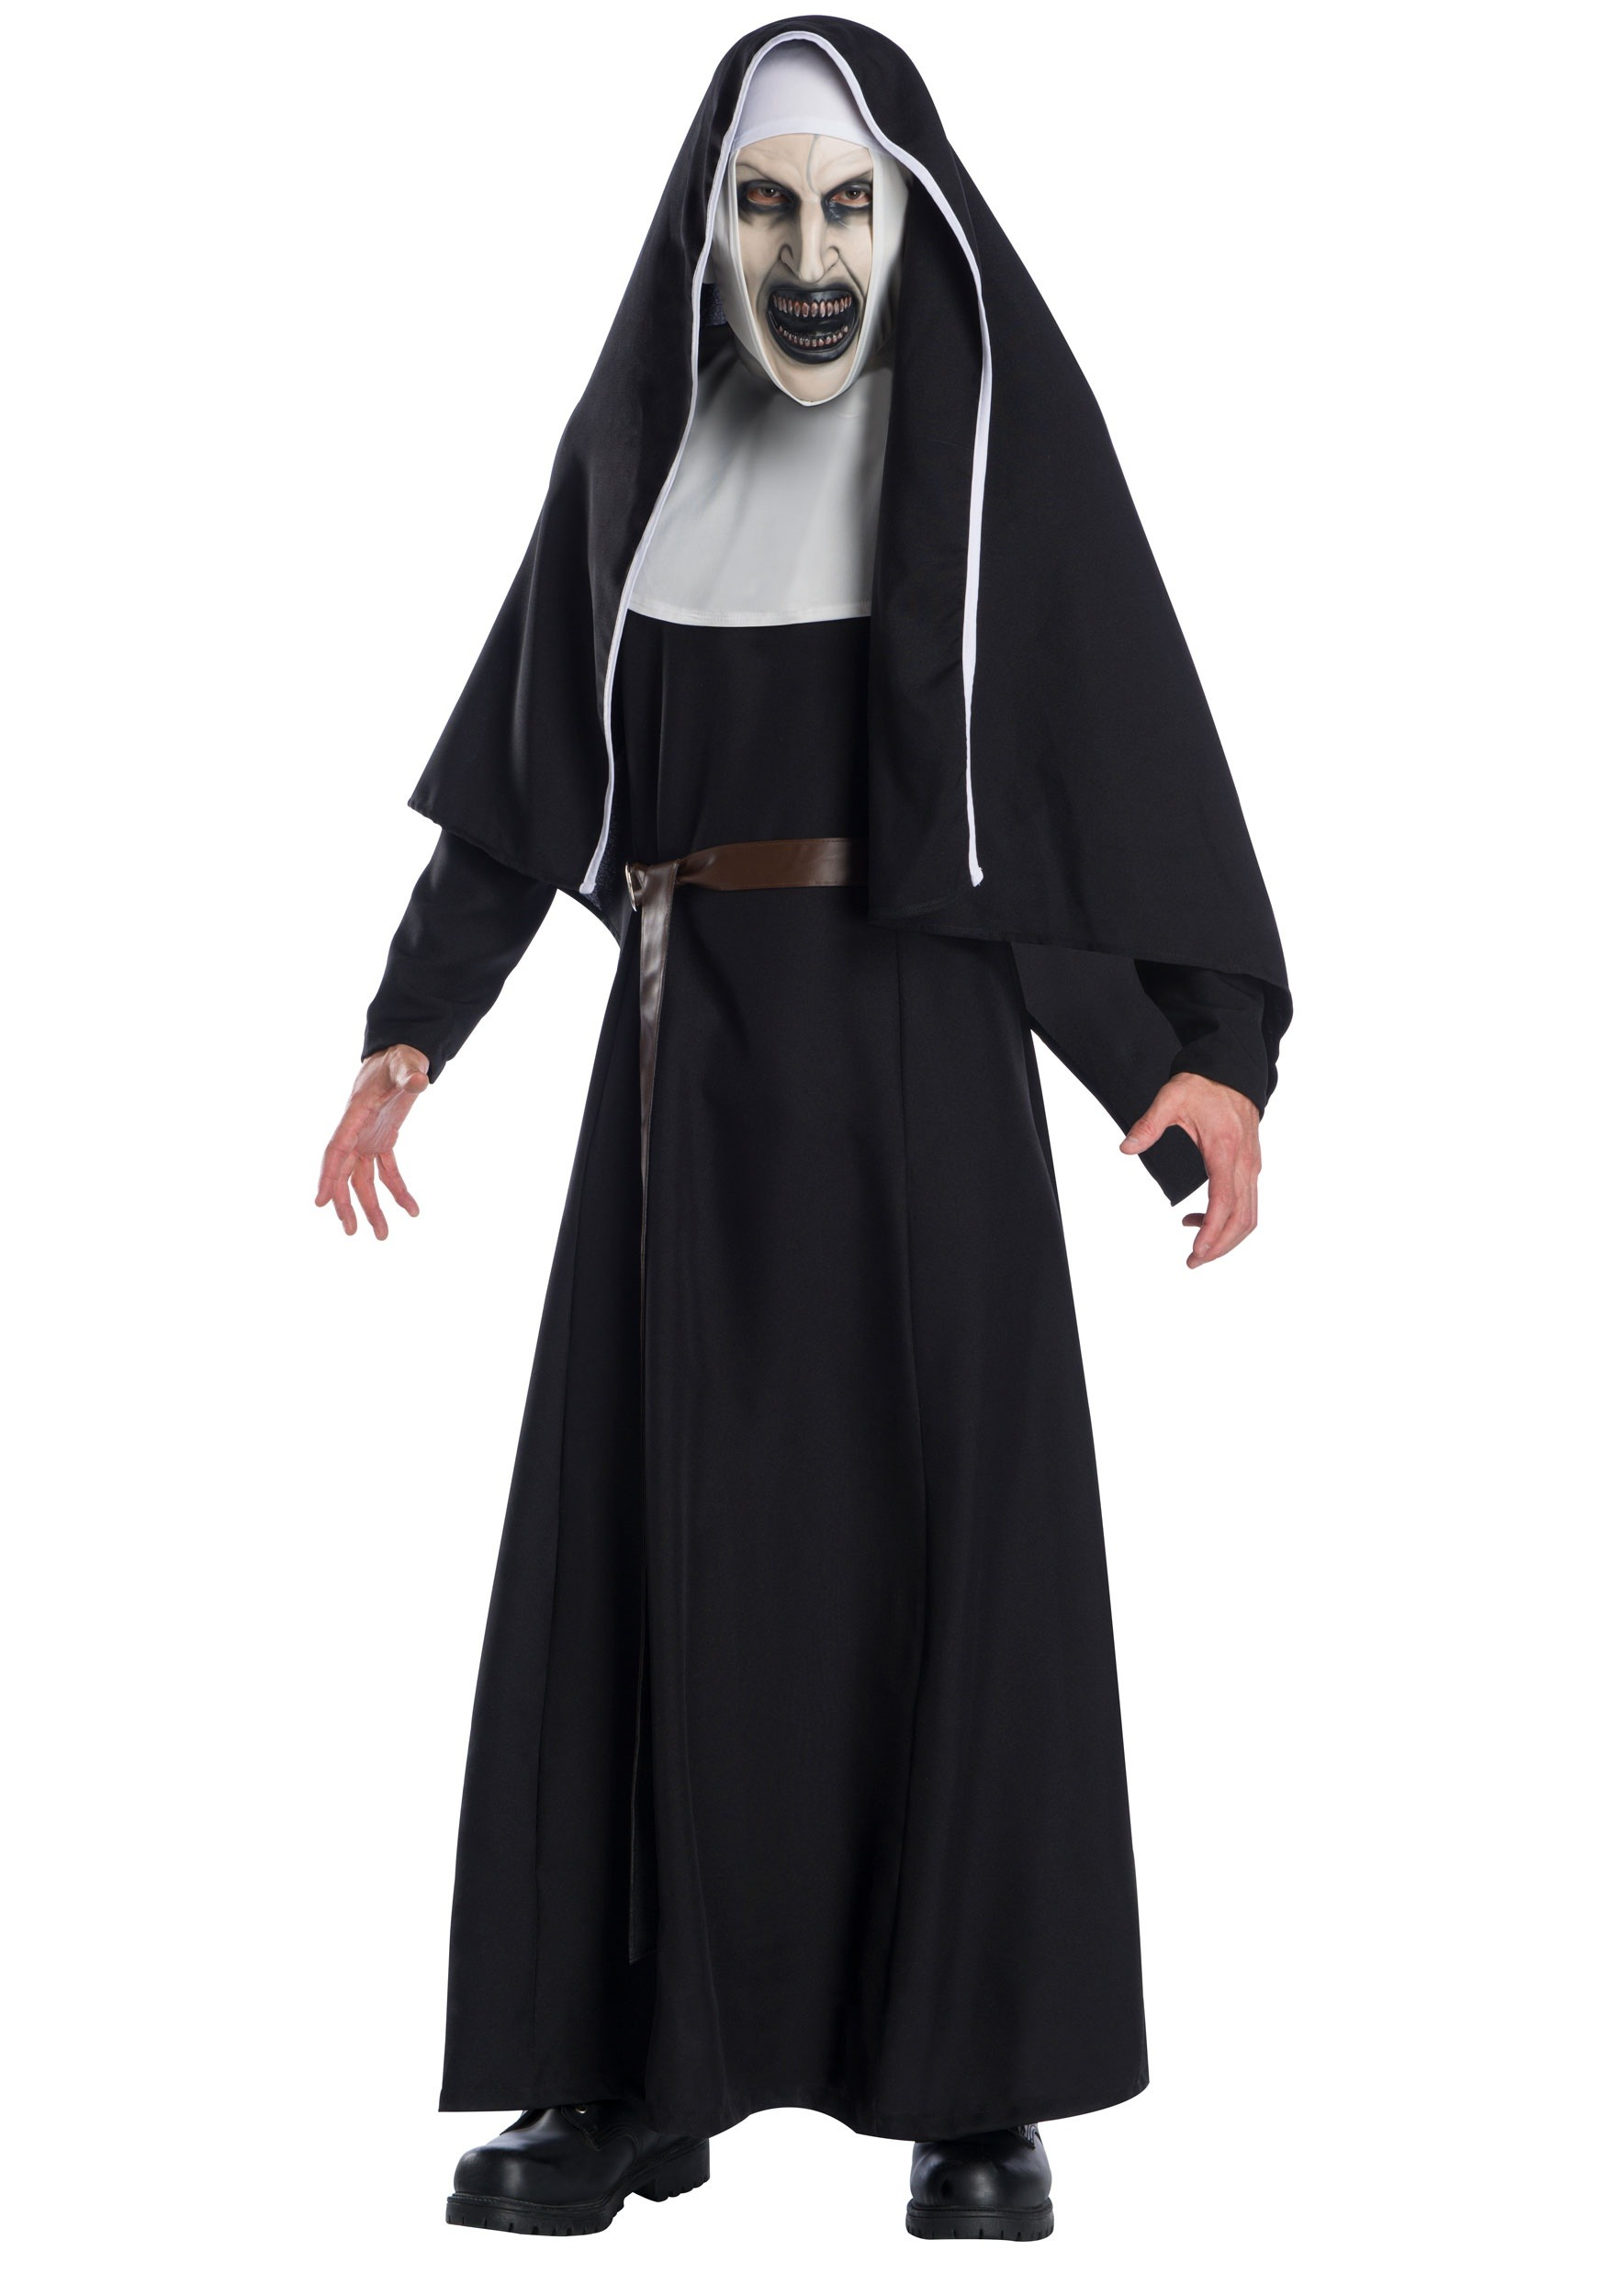 The Nun Deluxe Adult Costume